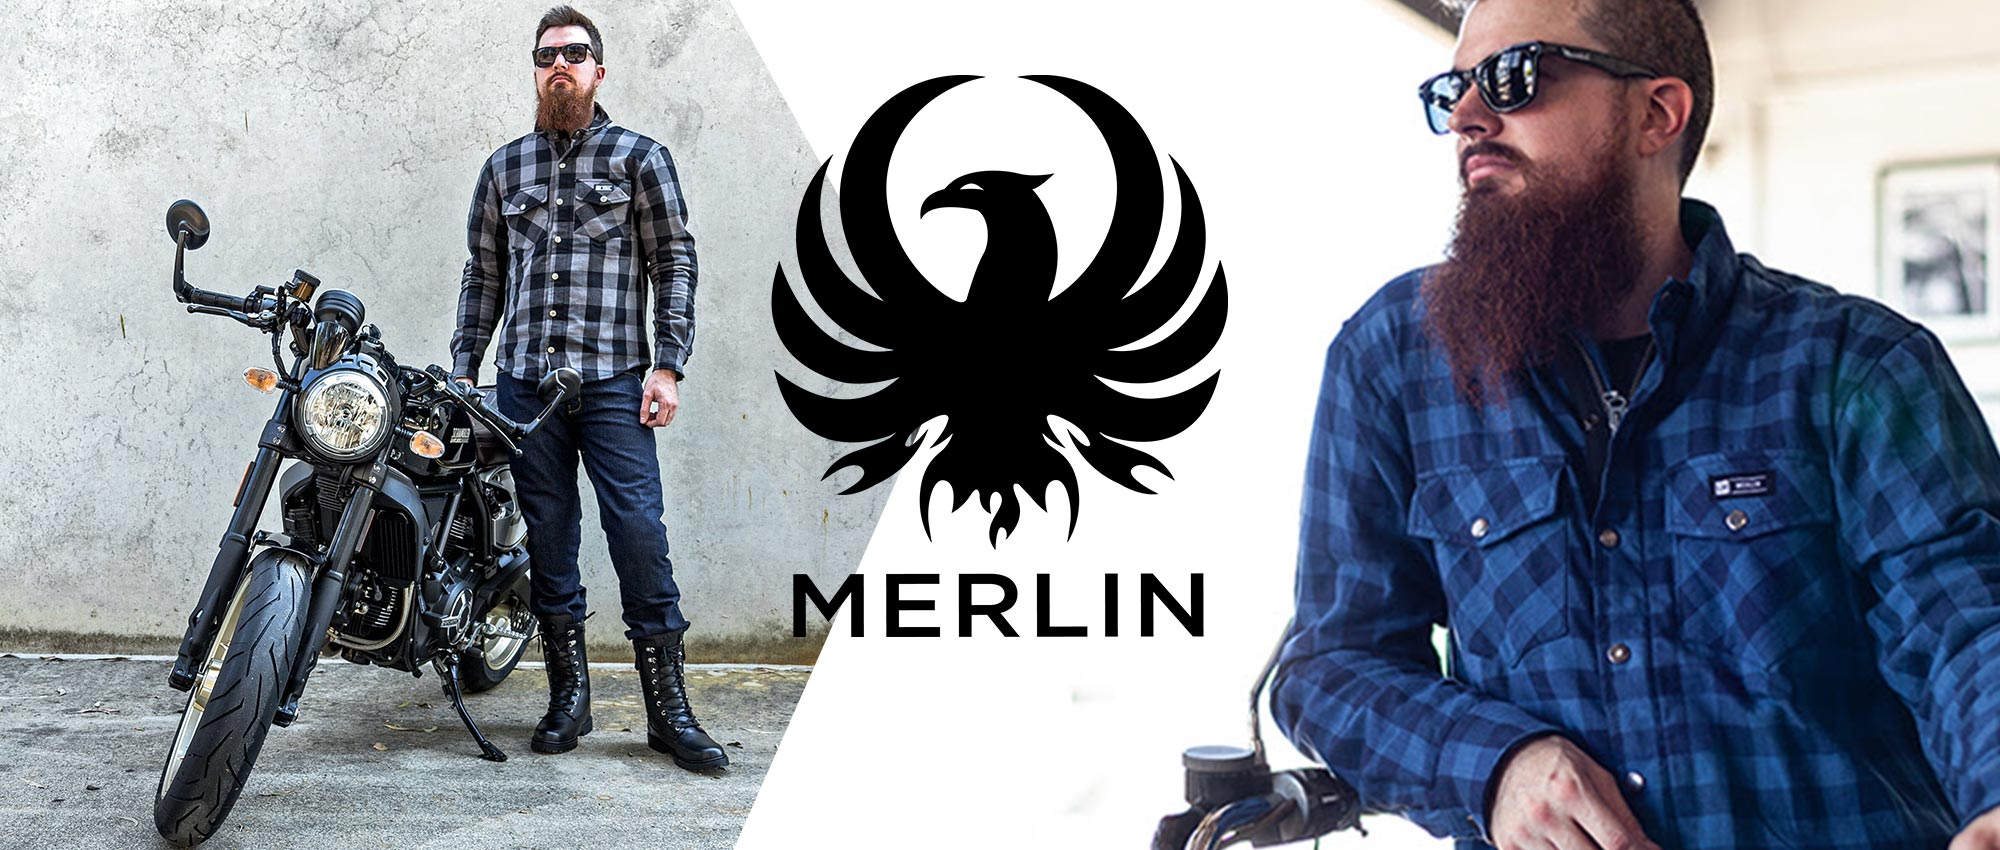 Merlin Axe Kevlar Shirt